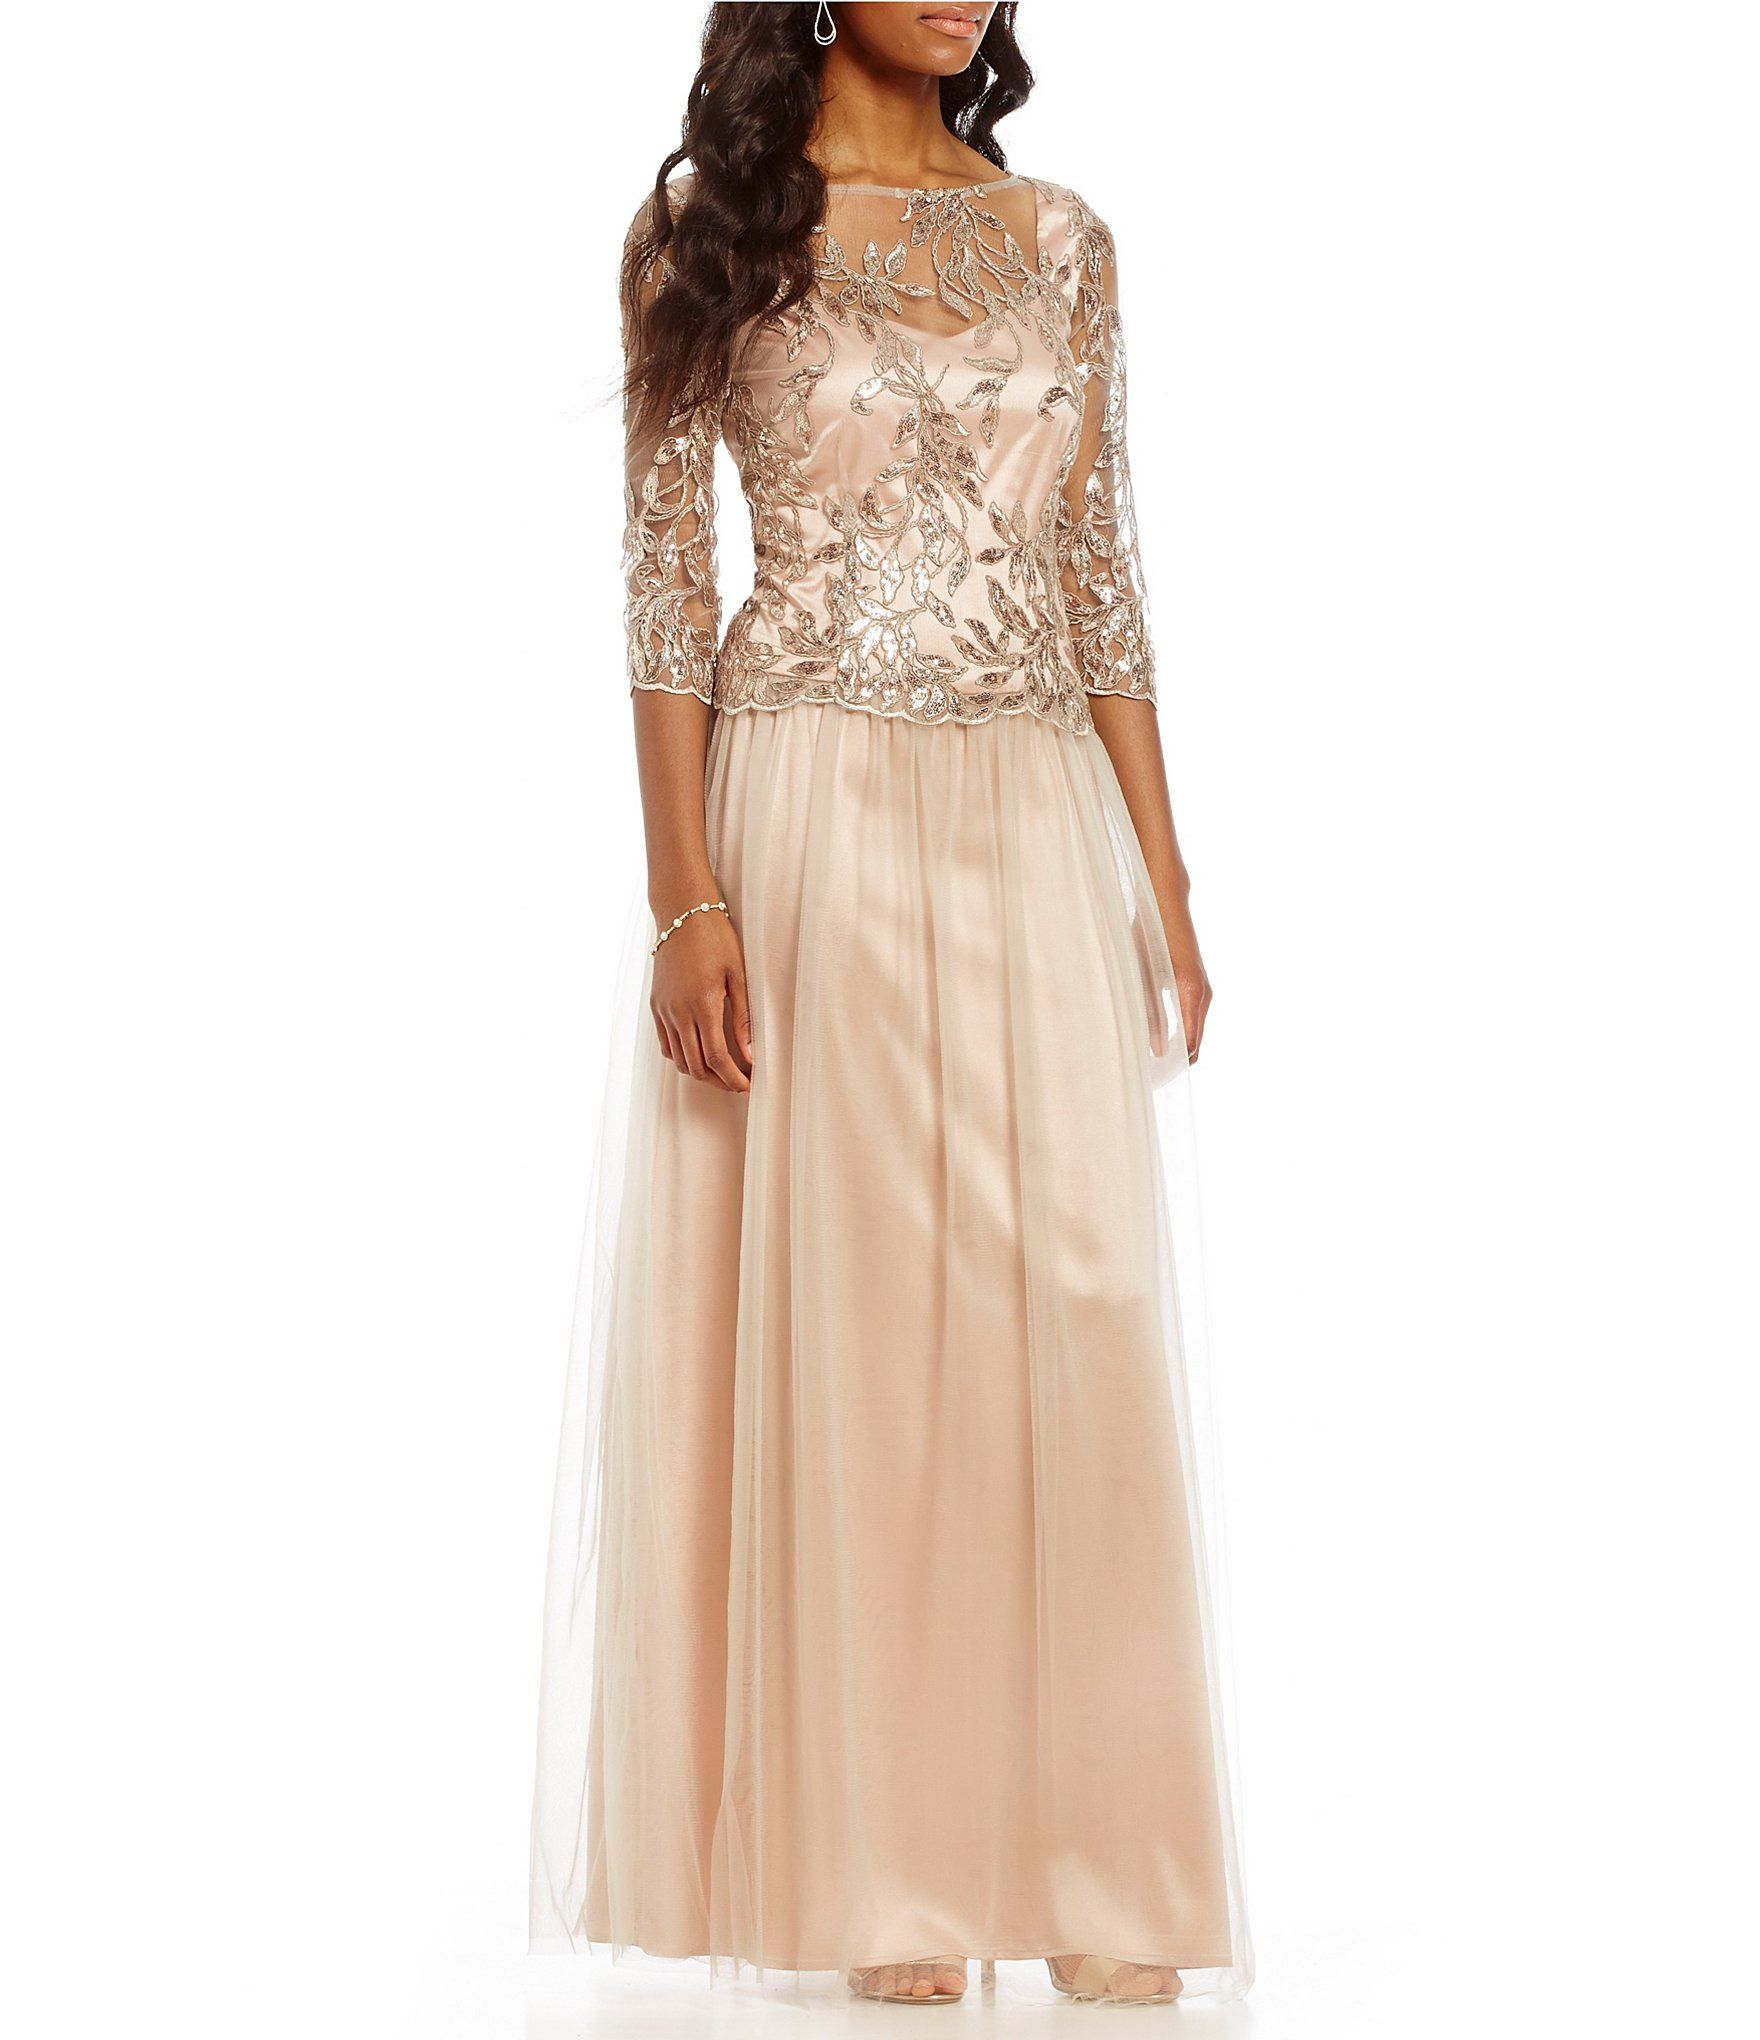 572024a85d8 Brianna Embroidered Sequin Mesh Gown  Dillards Mother Of The Bride